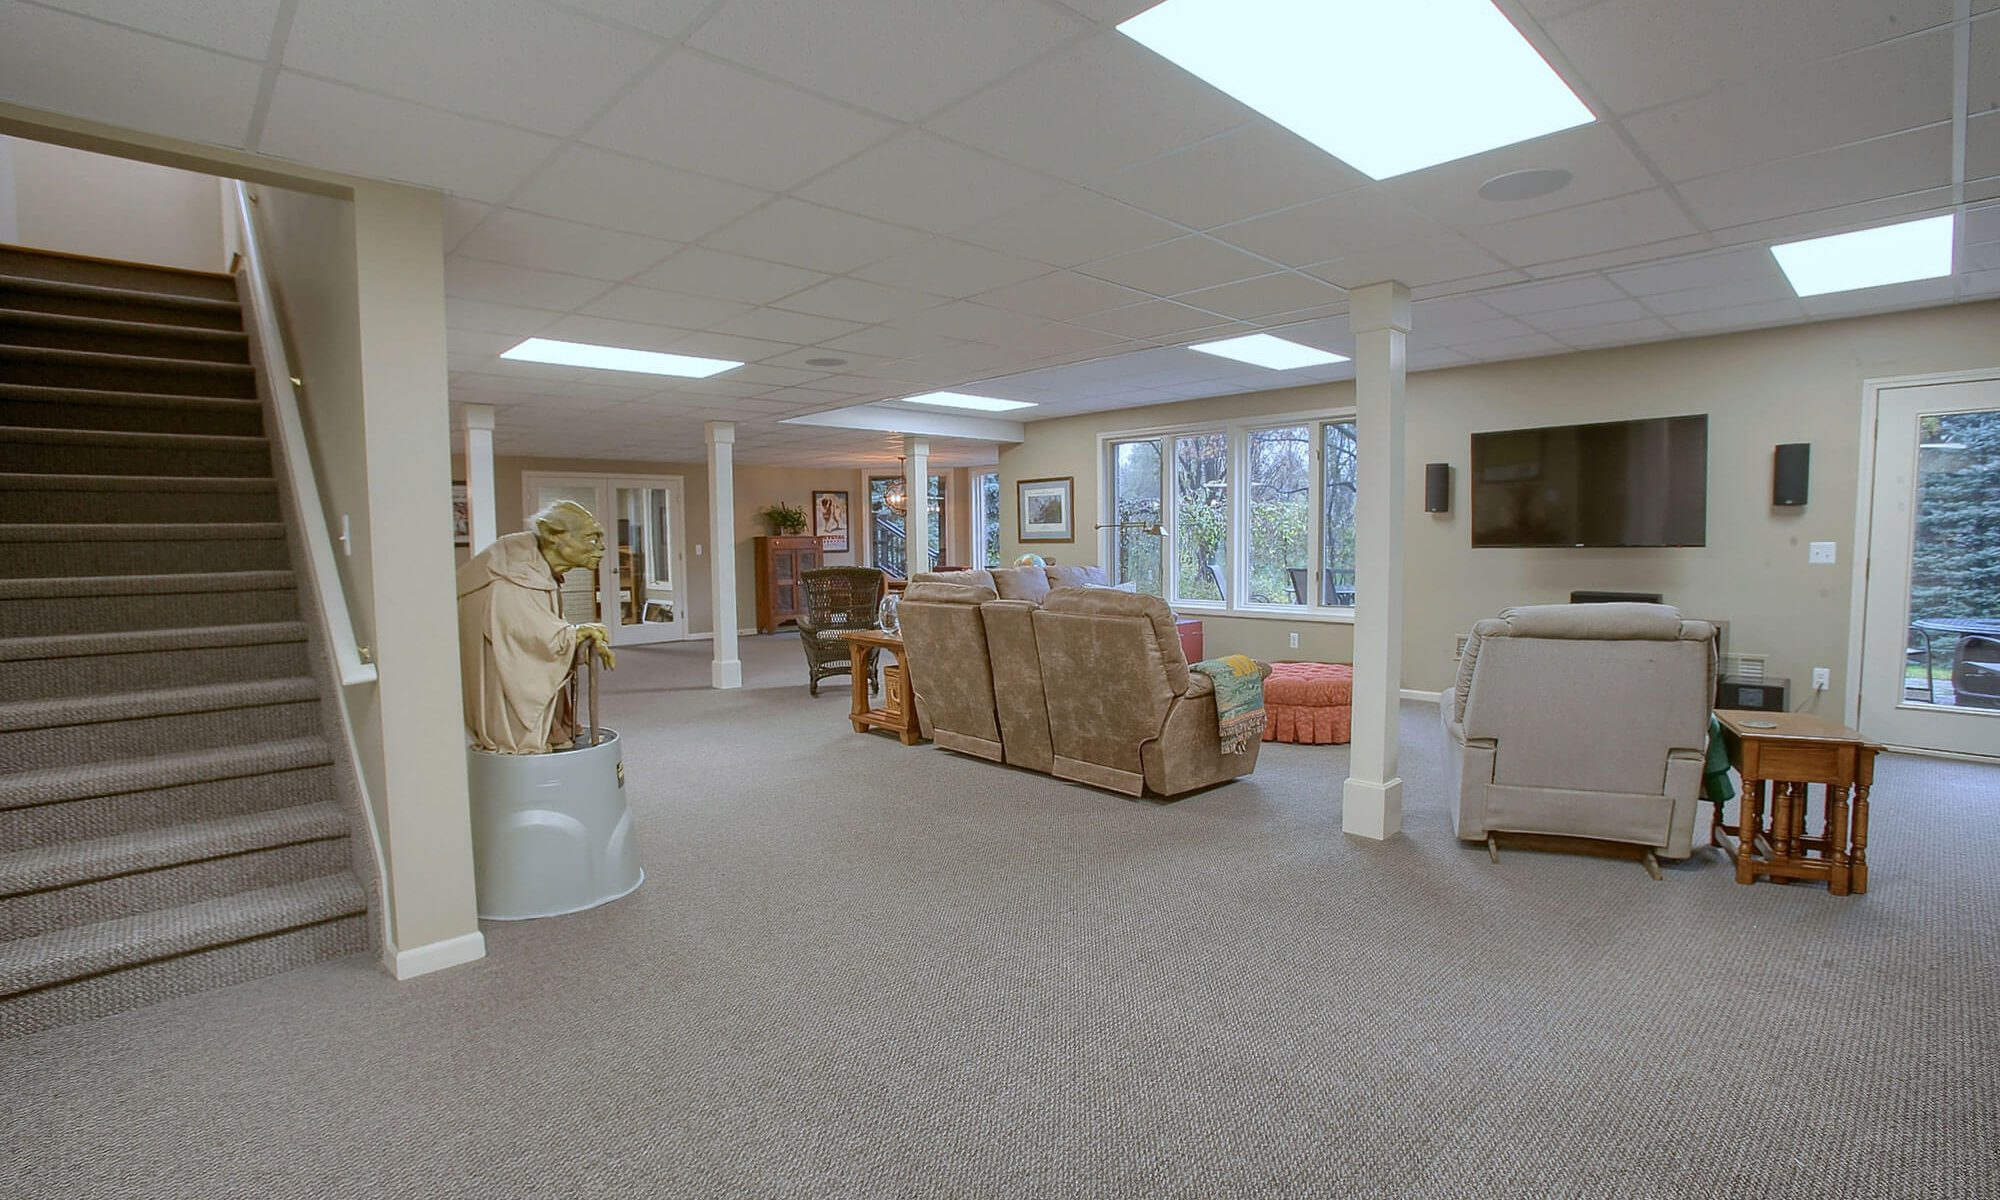 Open Carpeted Basement Remodel